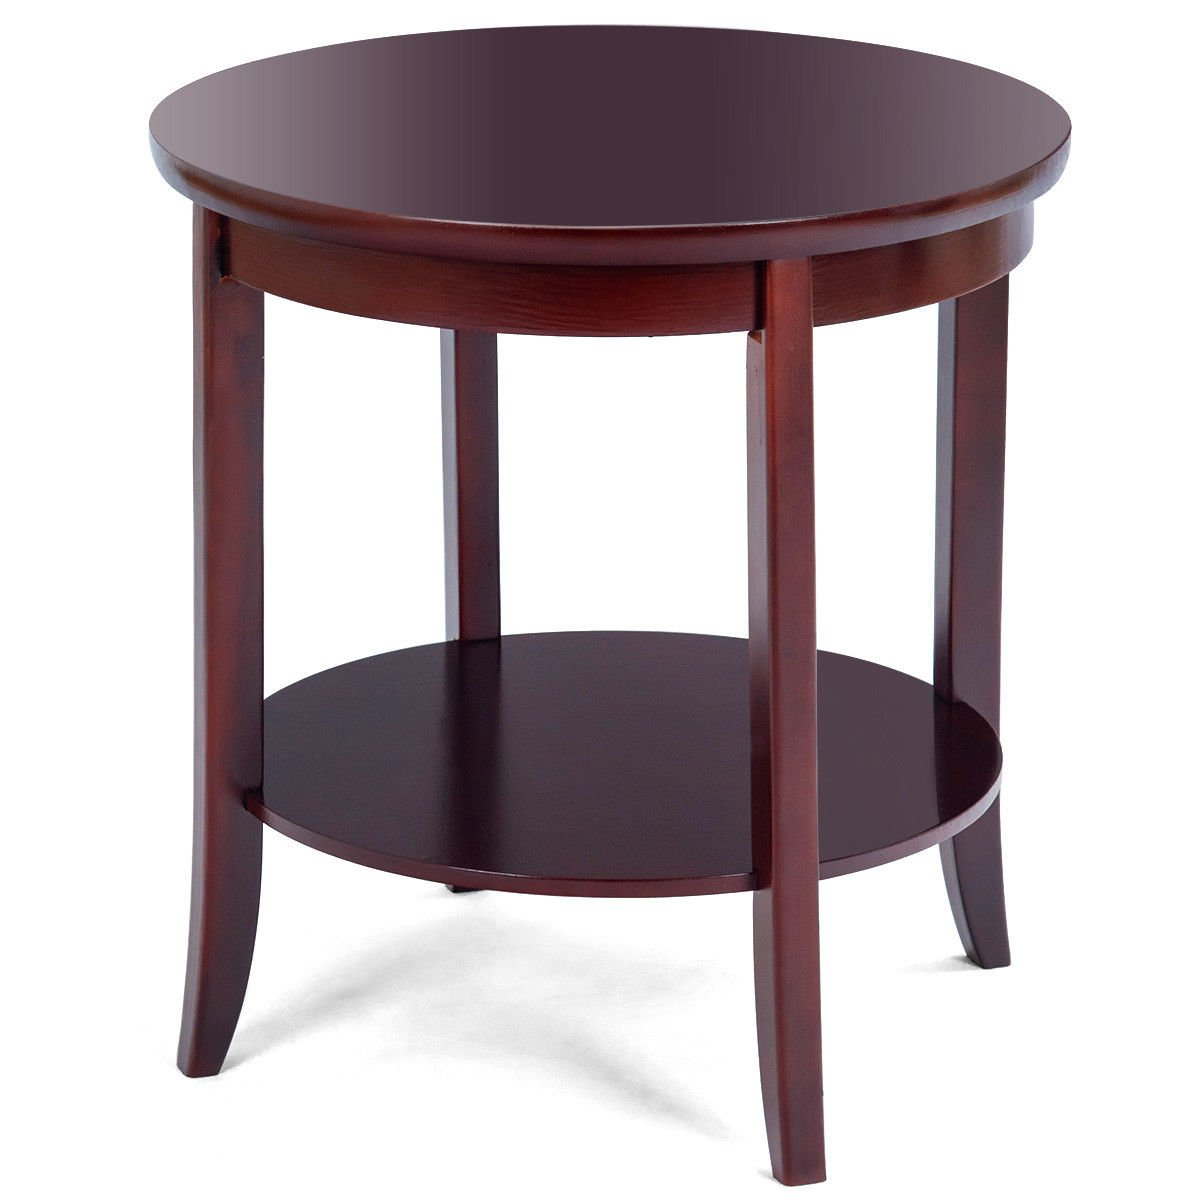 round wood end table sofa side coffee storage cherry finish shelf new kitchen dining chest blue couch living room kmart black carved elephant antique mission style furniture plans